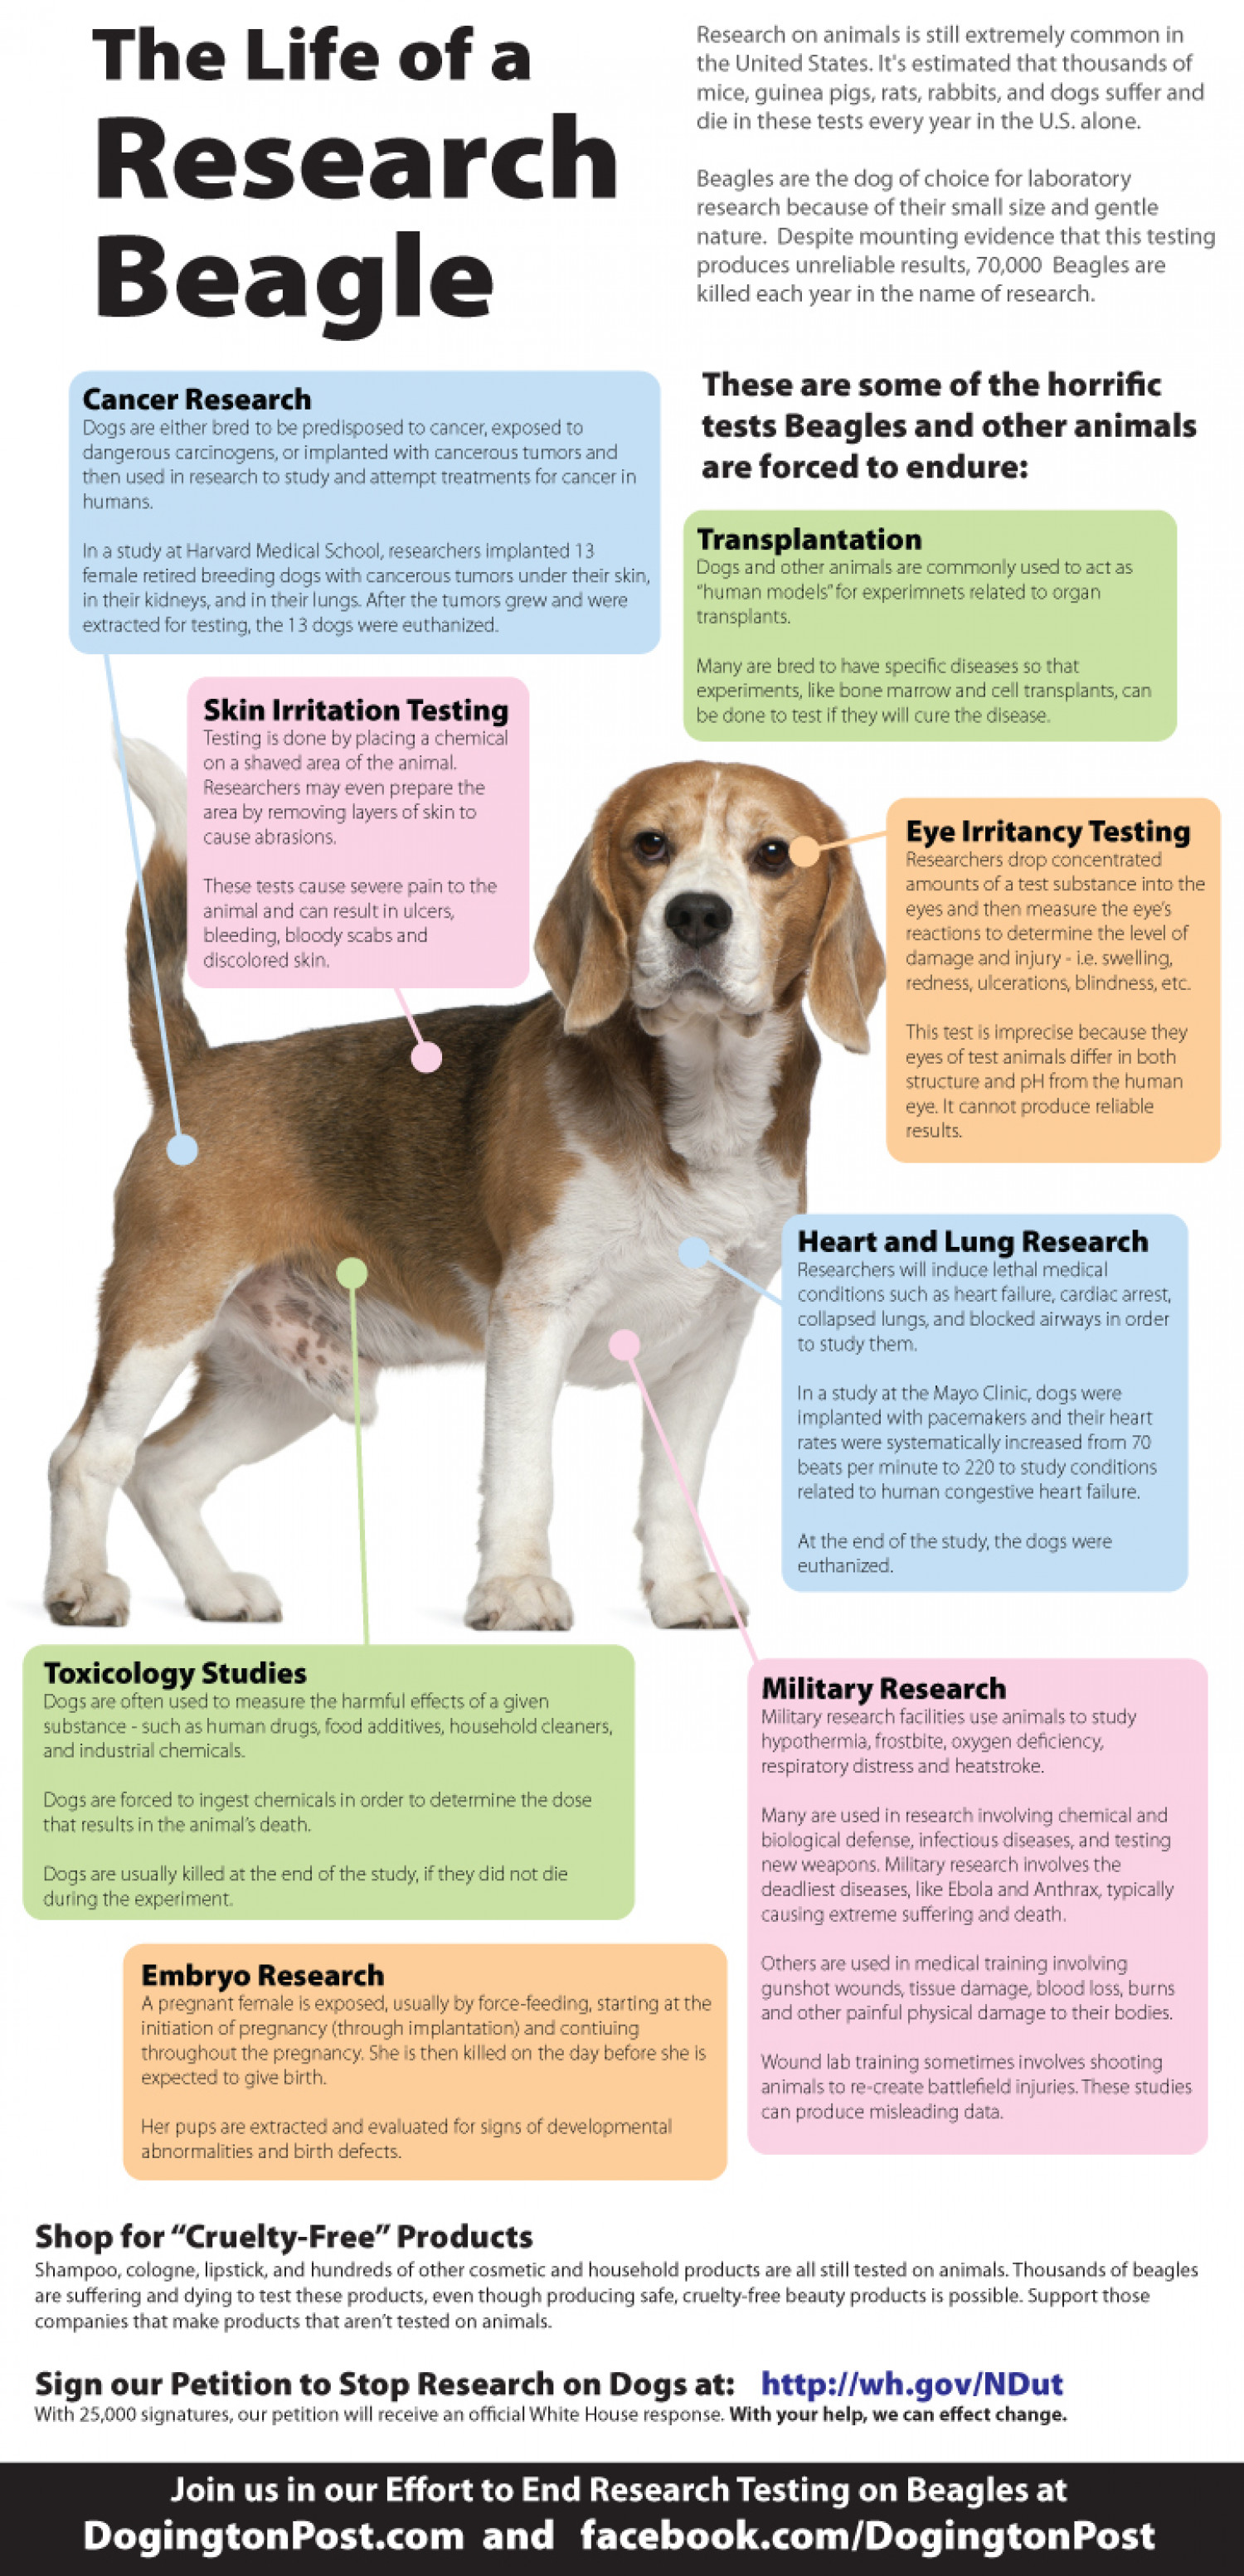 The Life of a Research Beagle Infographic